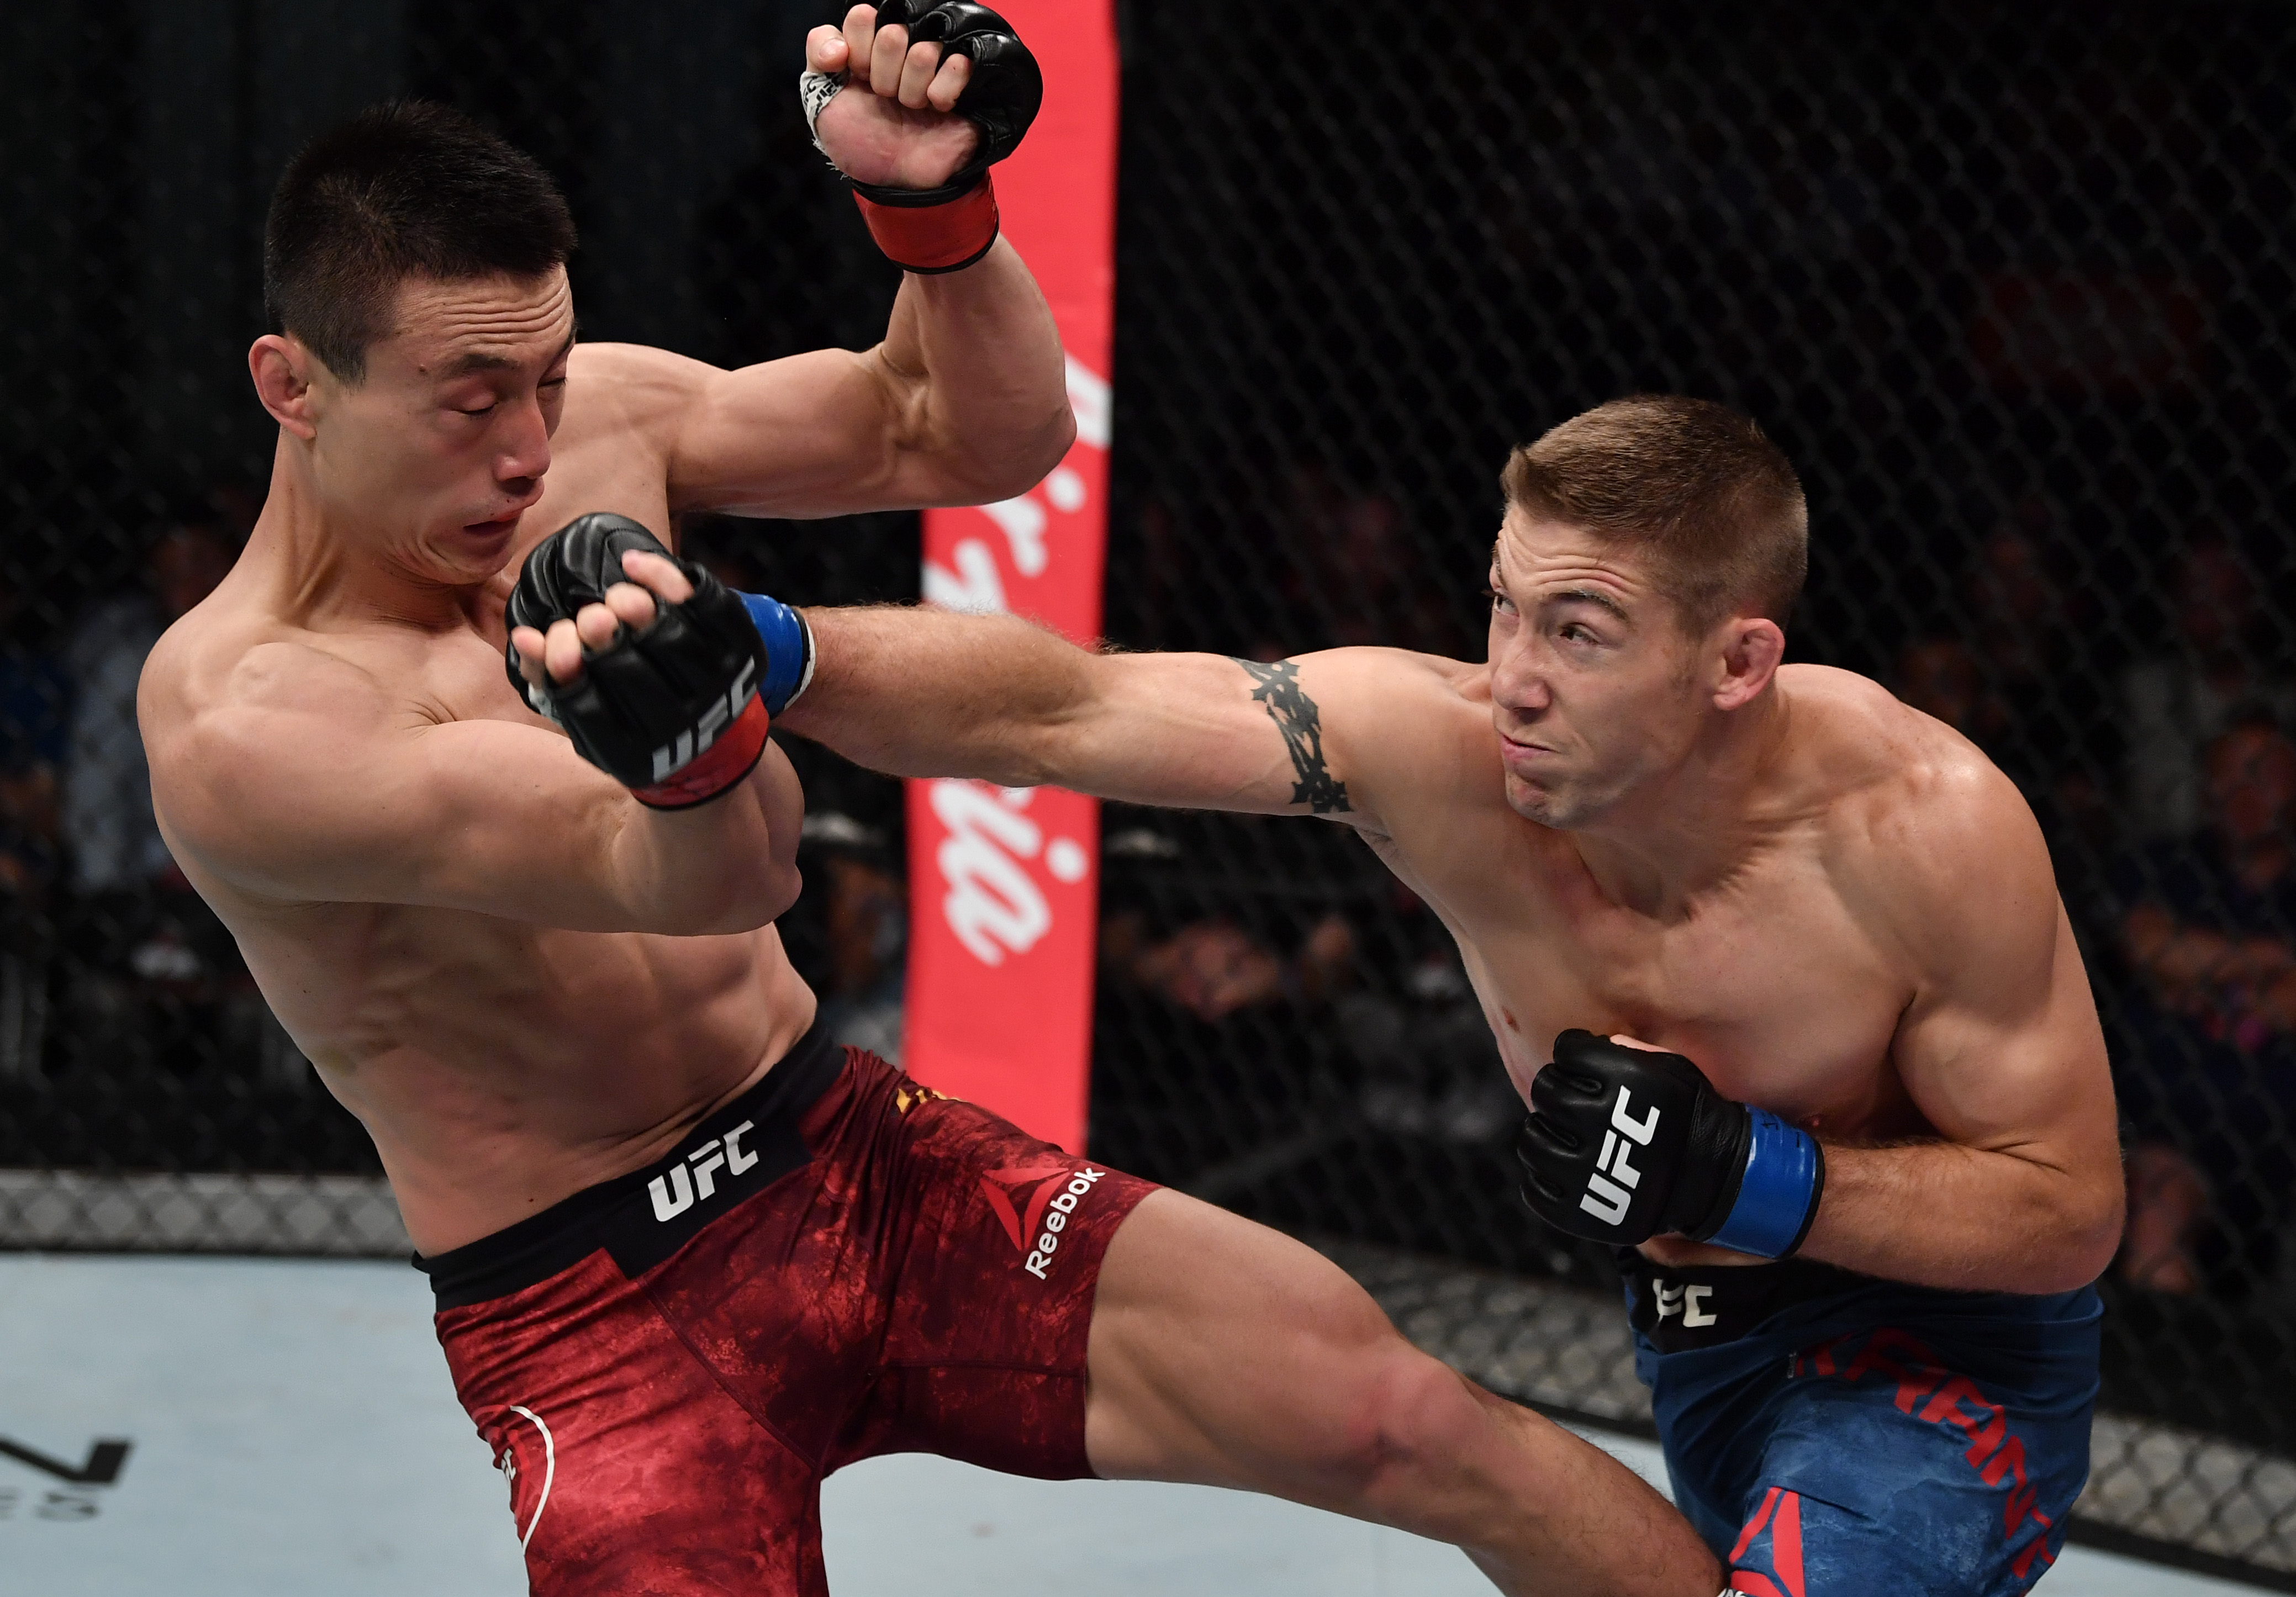 Derrick Krantz punches Song Kenan of China in their welterweight bout during the UFC Fight Night event at Shenzhen Universiade Sports Centre on August 31, 2019 in Shenzhen, China. (Photo by Brandon Magnus/Zuffa LLC)